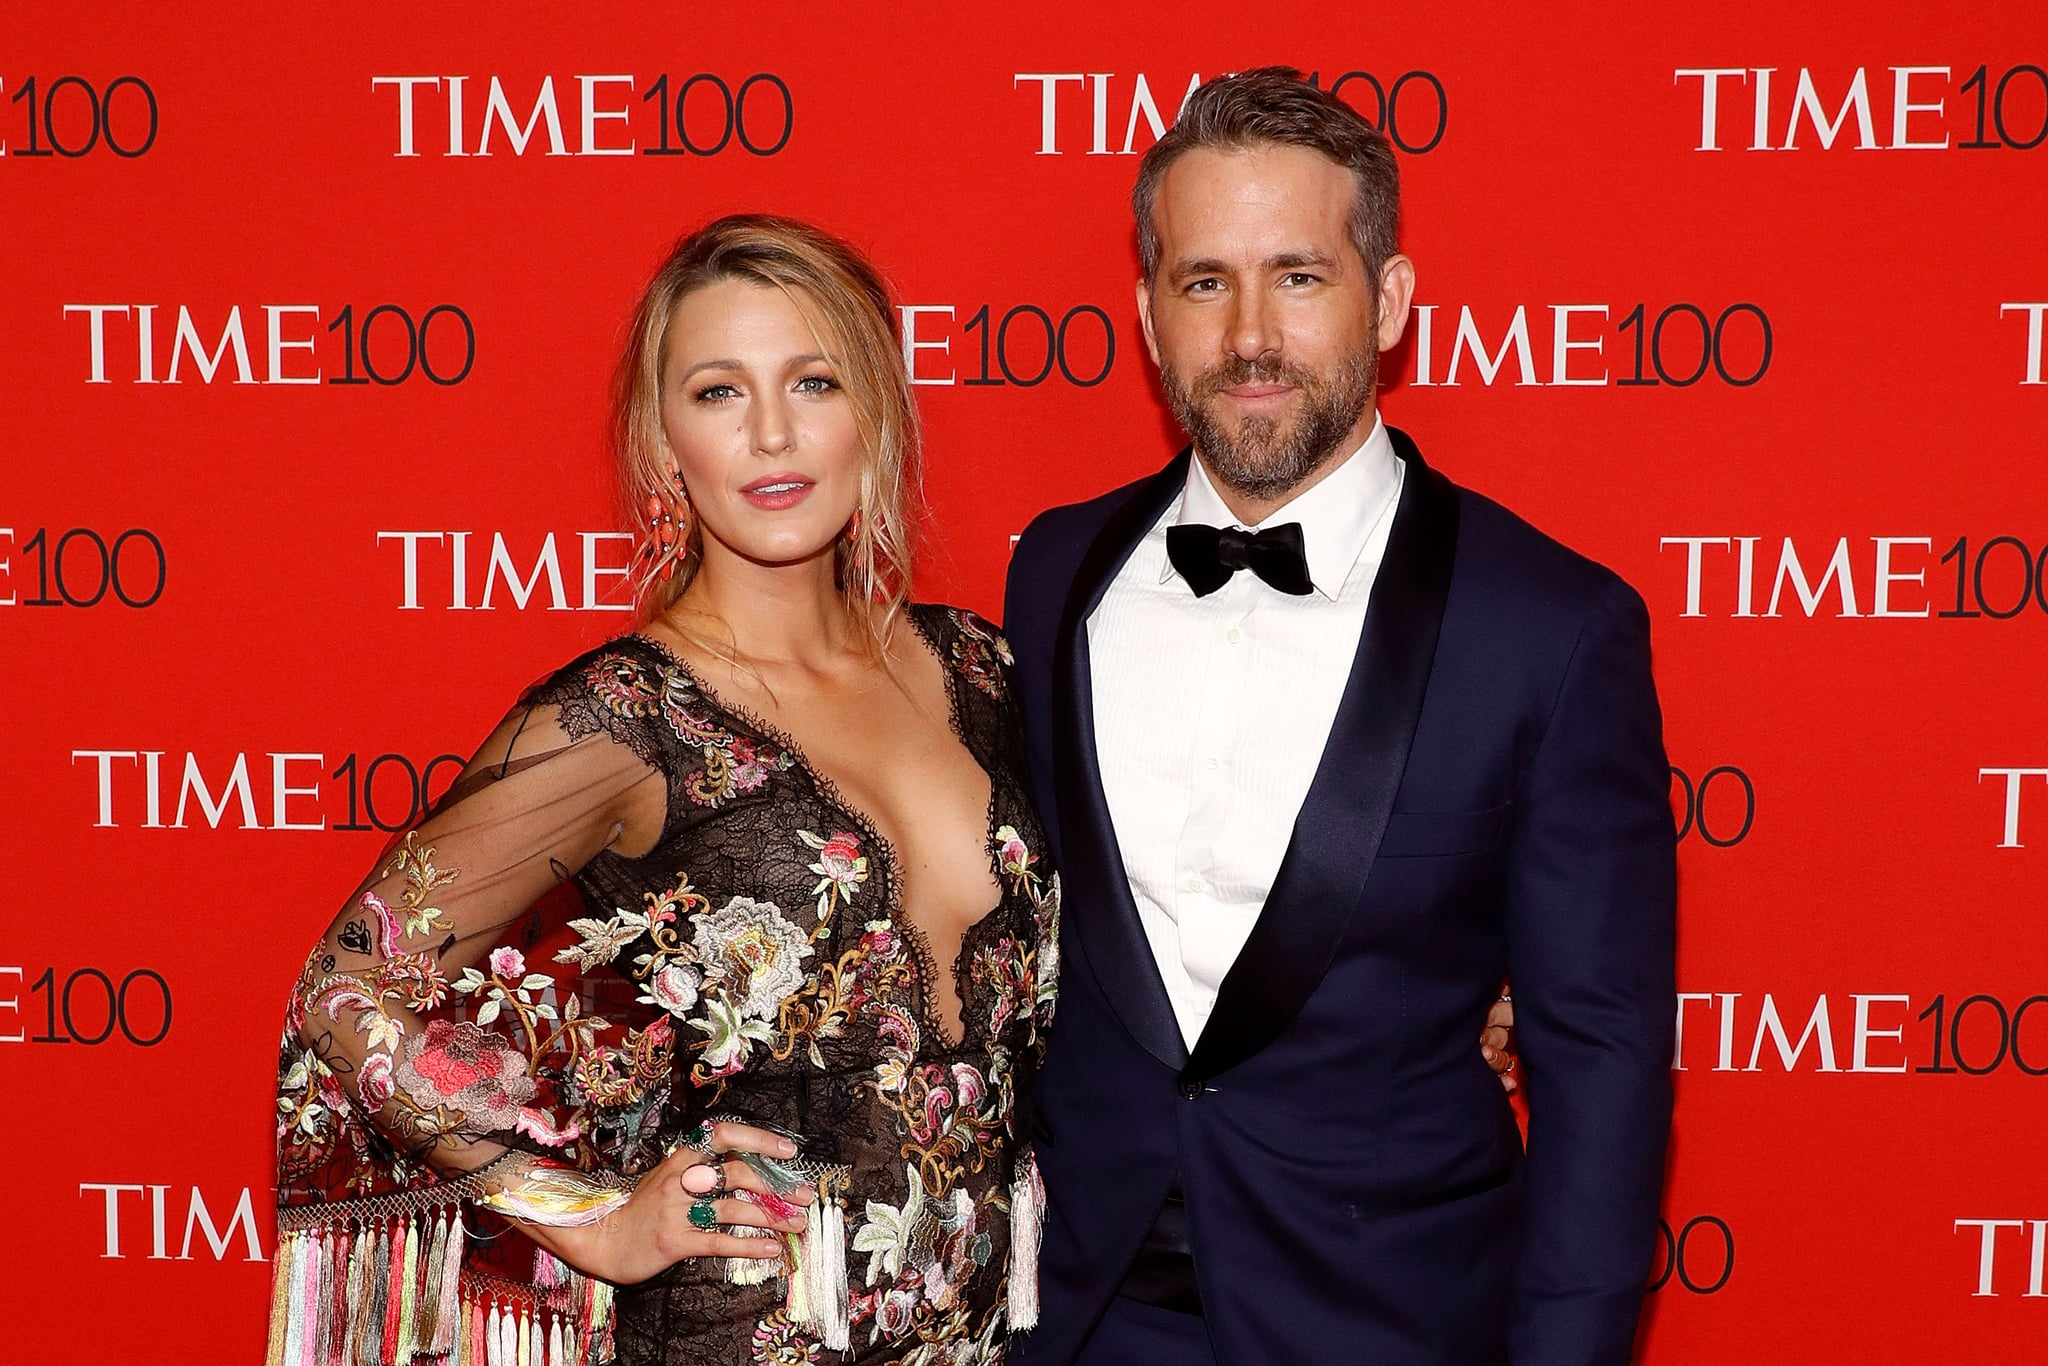 NEW YORK, NY - APRIL 25:  Blake Lively and Ryan Reynolds attend the 2017 Time 100 Gala at Jazz at Lincoln centre on April 25, 2017 in New York City.  (Photo by Taylor Hill/FilmMagic)